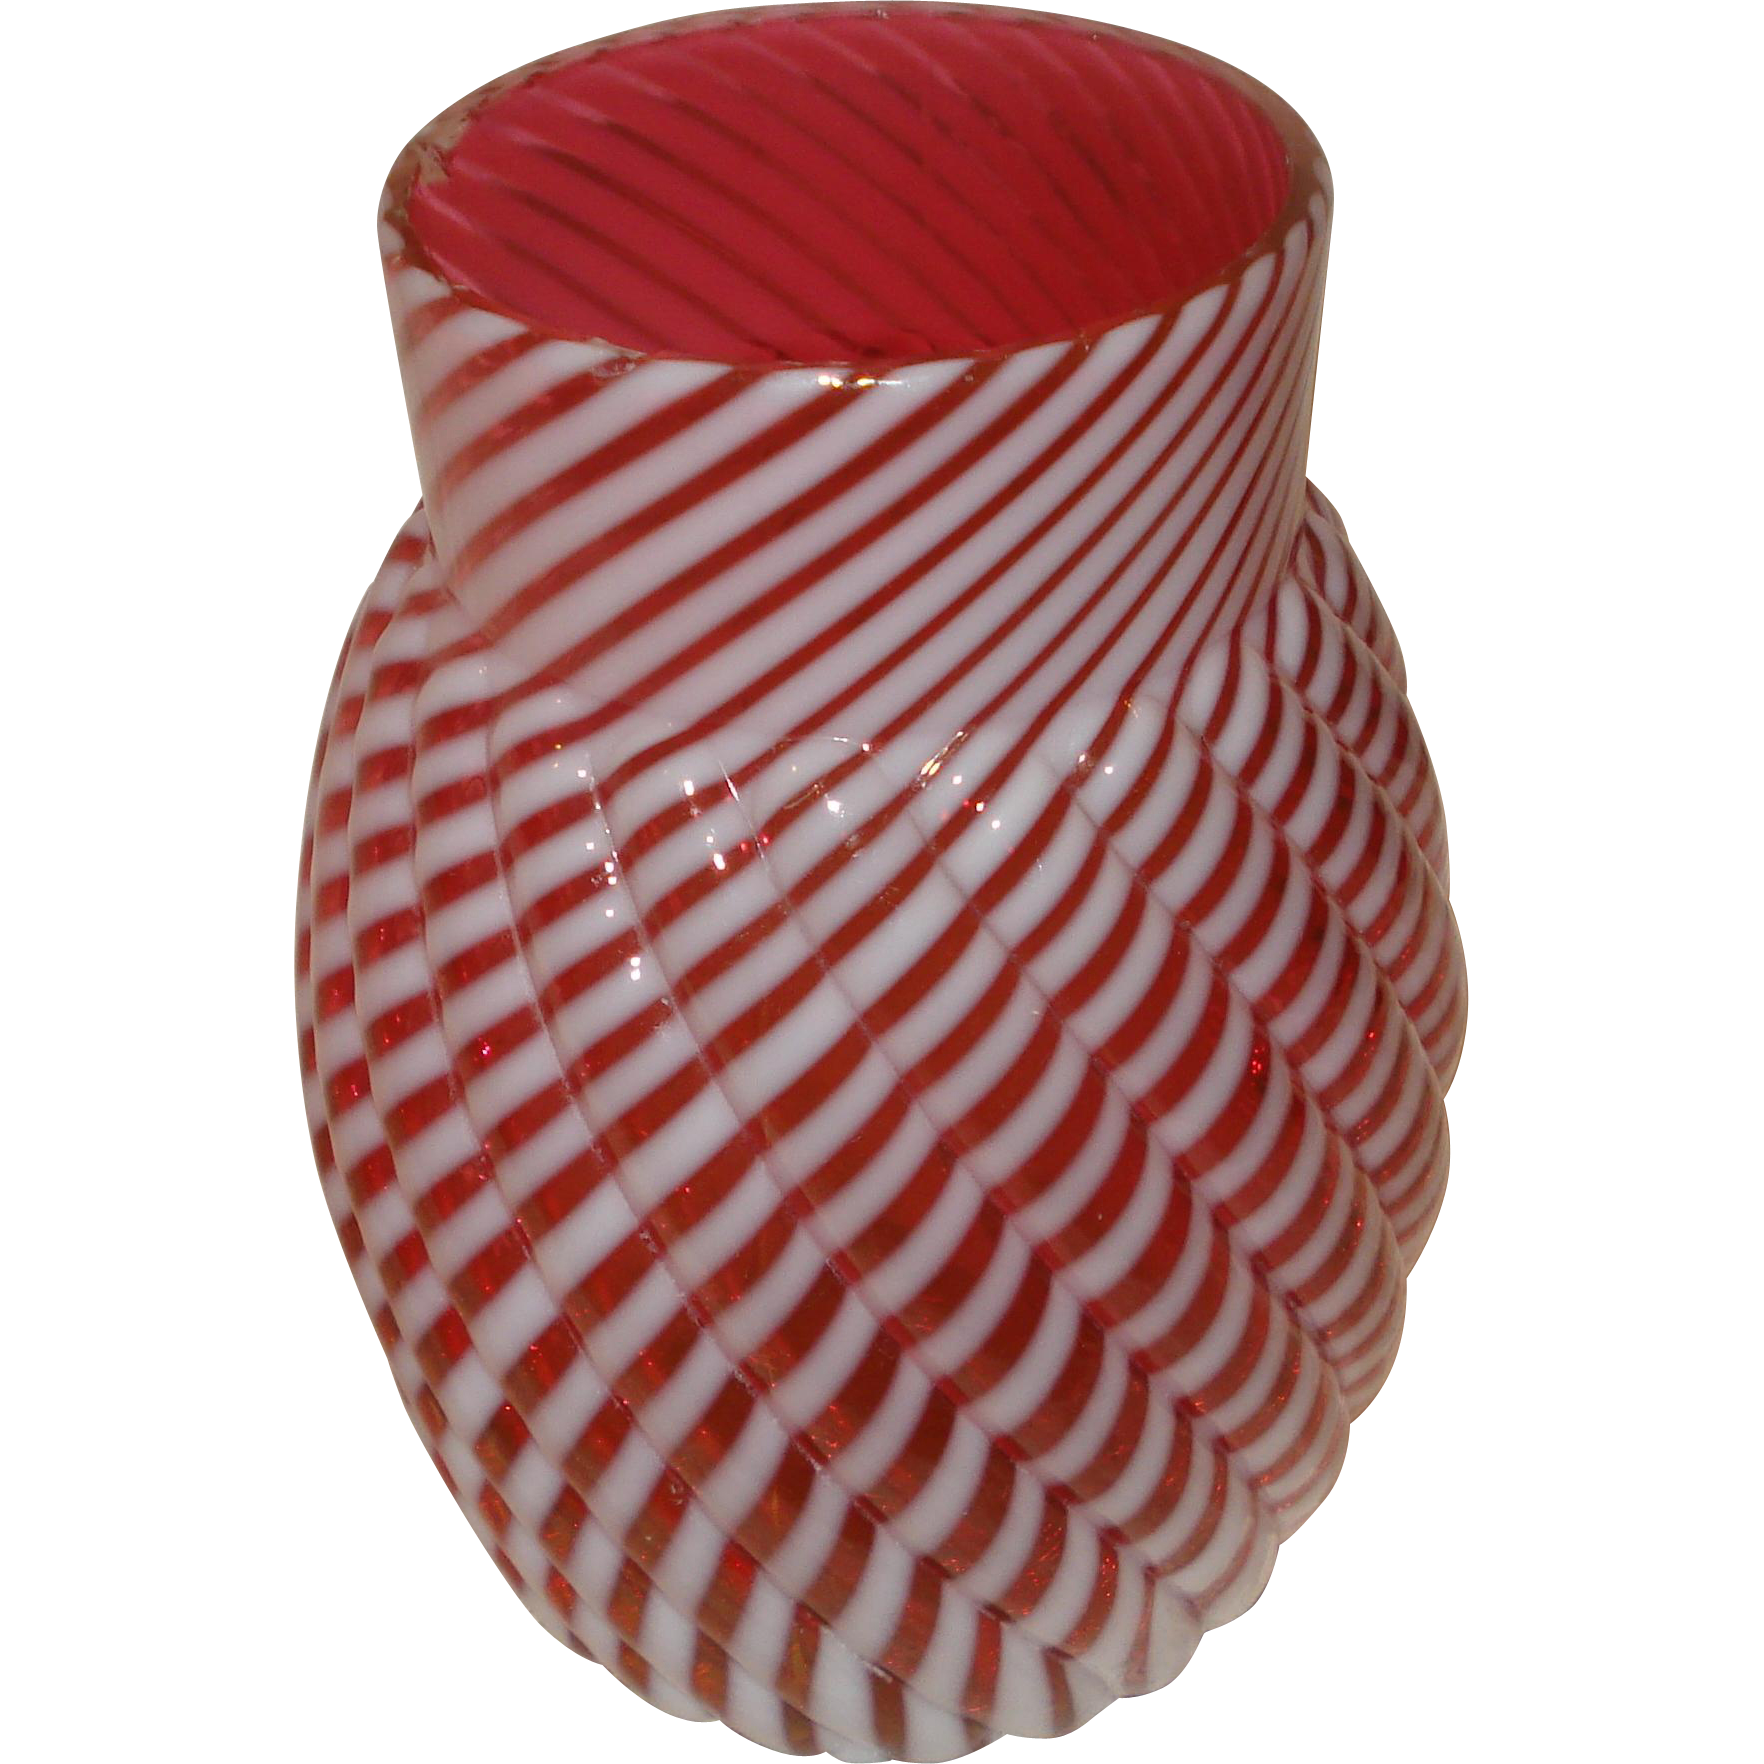 Fenton Cranberry Swirl Glass Vase